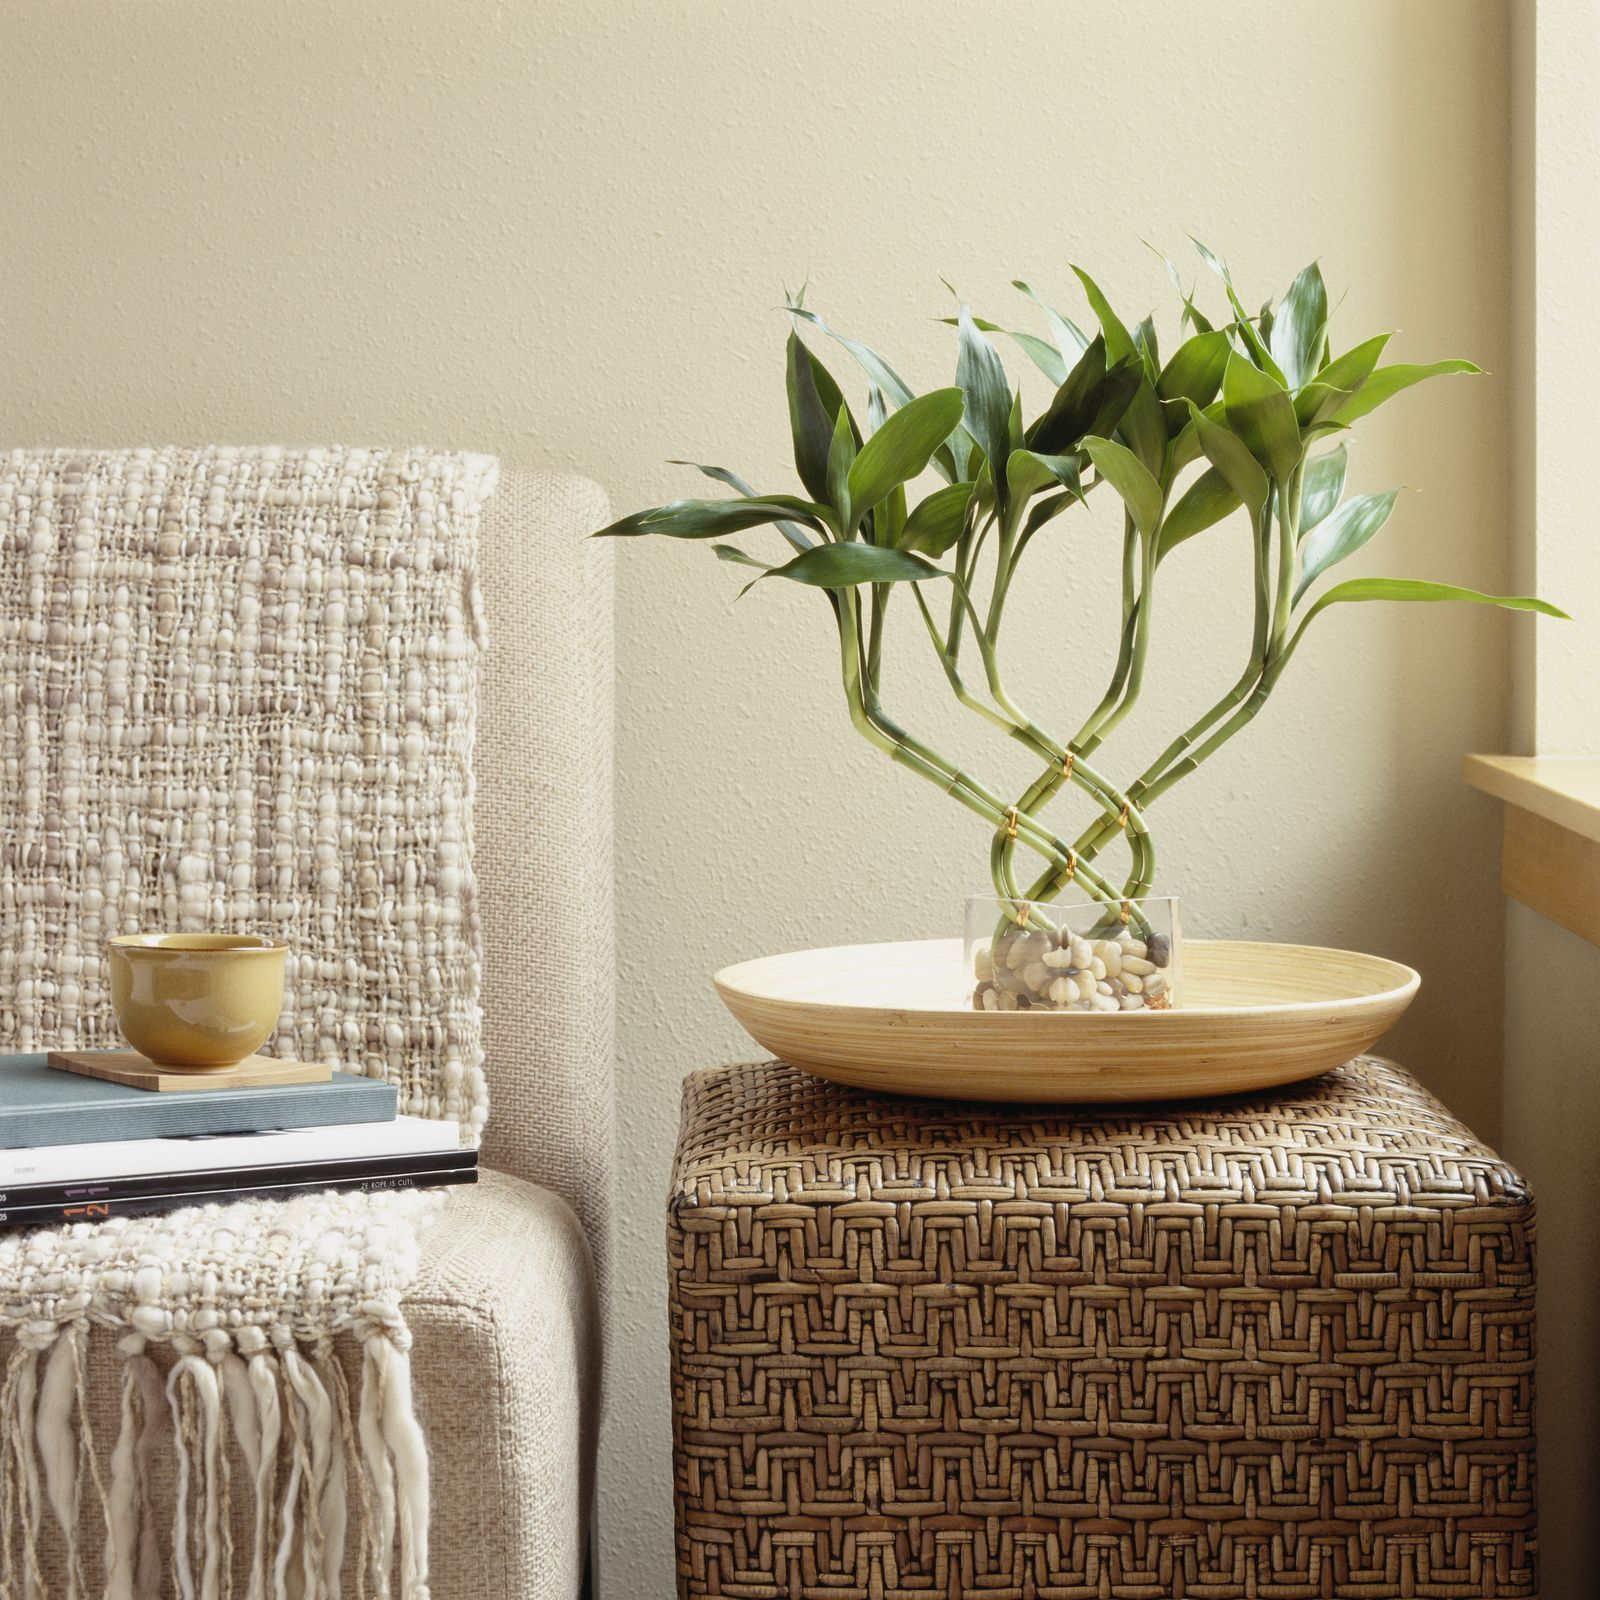 If You Live In An Apartment You Need One Of These Plants With